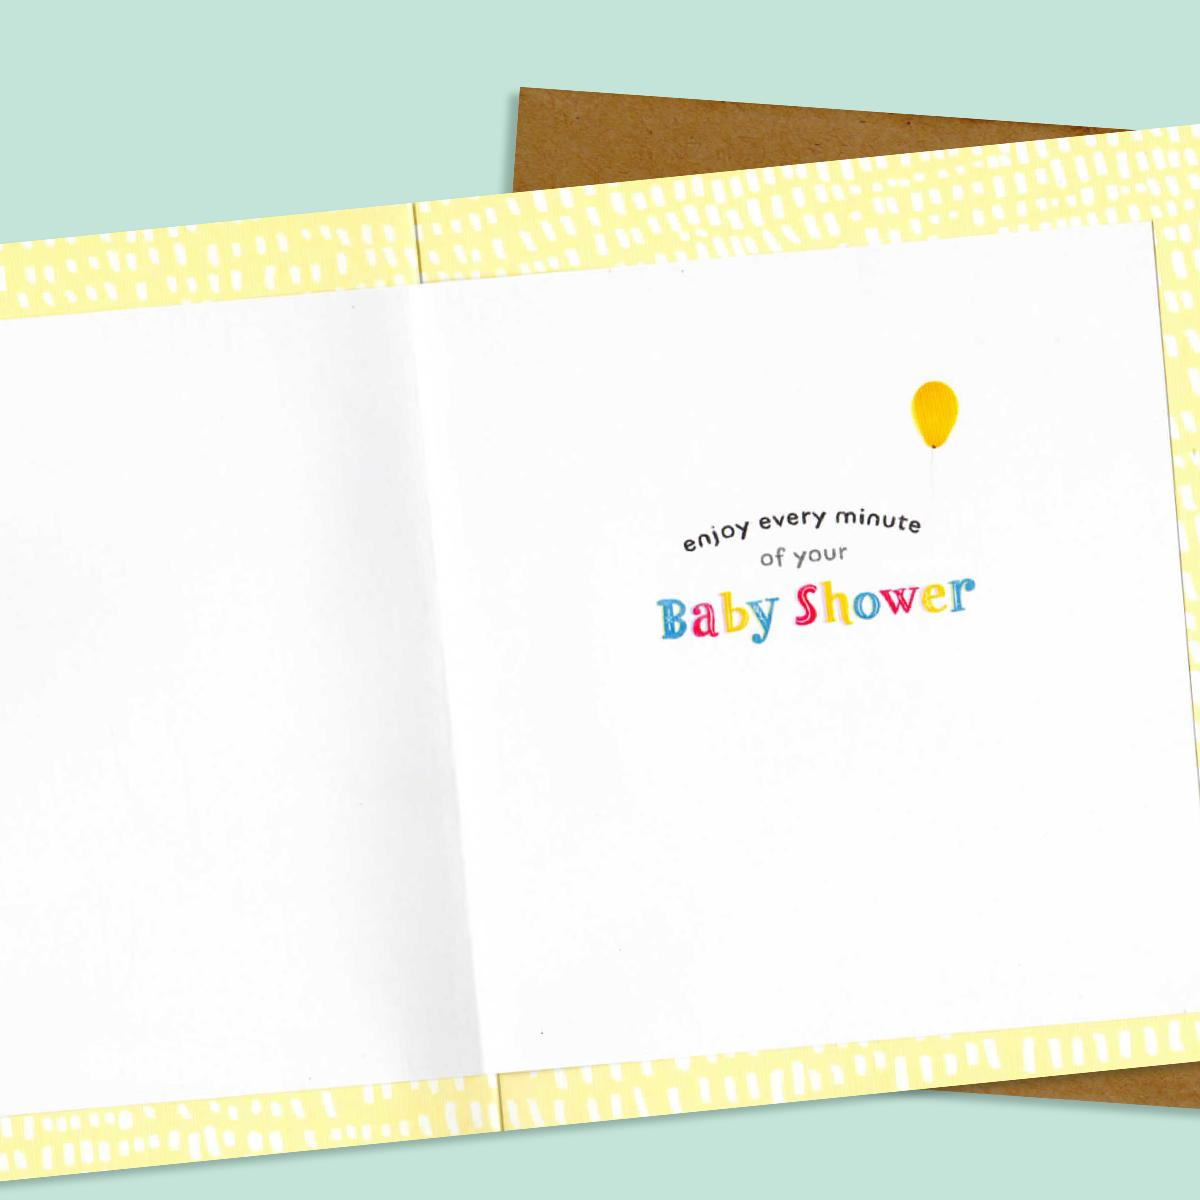 Inside Image Of Baby Shower Card To Show Printed Text And Layout